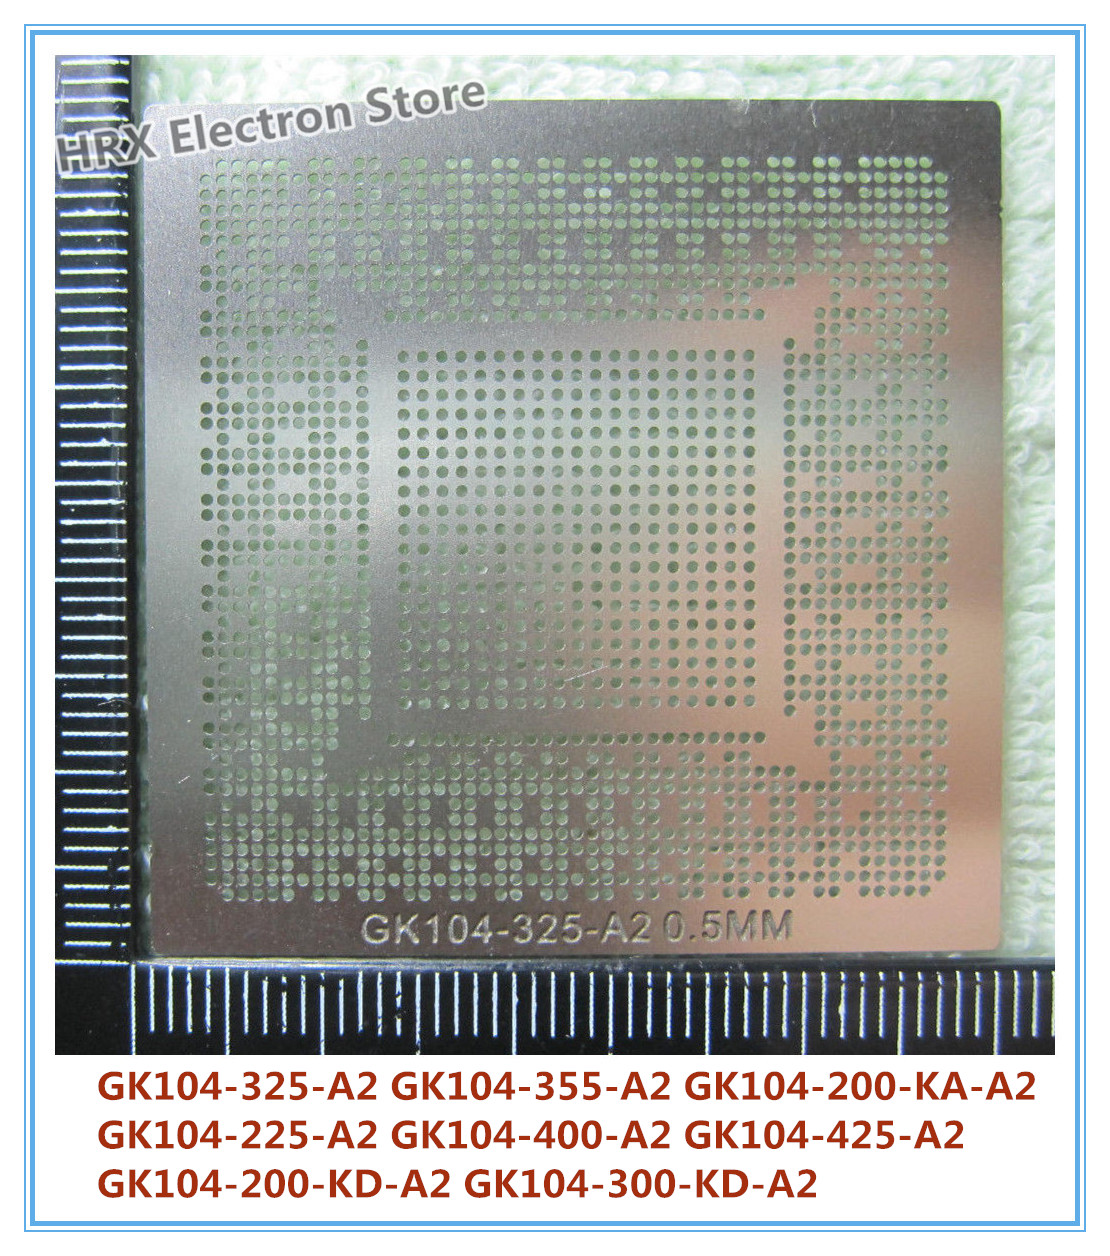 Electronic Components & Supplies Direct Heating Gk104-325-a2 Gk104-400-a2 Gk104-200-kd-a2 Gk104-300-kd-a2 N13e-gt-w-a2 N13e-gtx-a2 N14e-gtx-a2 Stencil